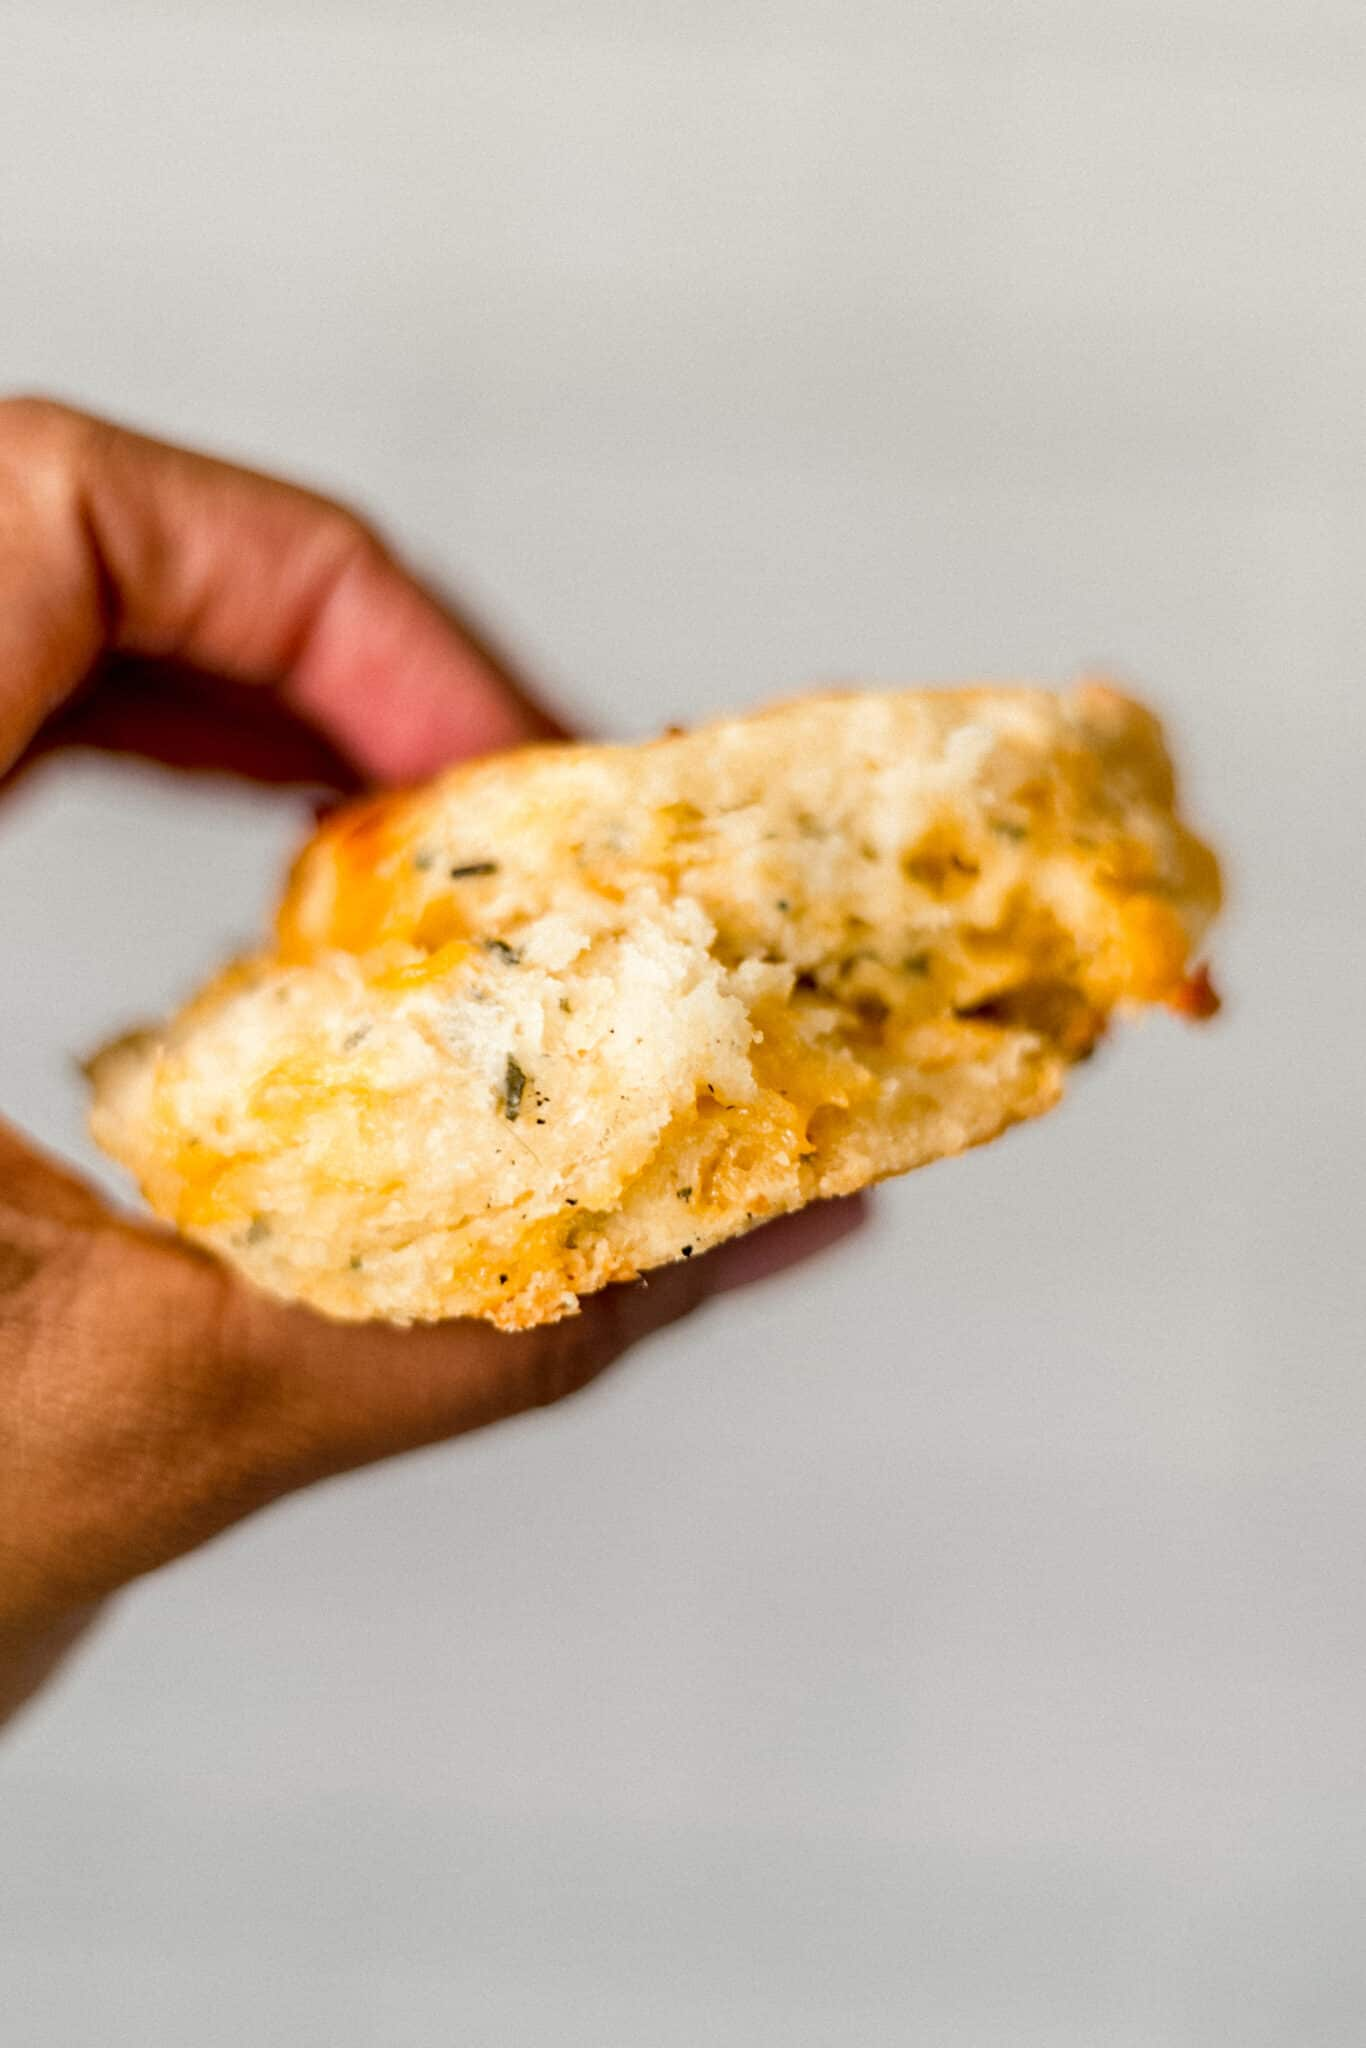 close up side view of hand holding cheddar herb biscuit